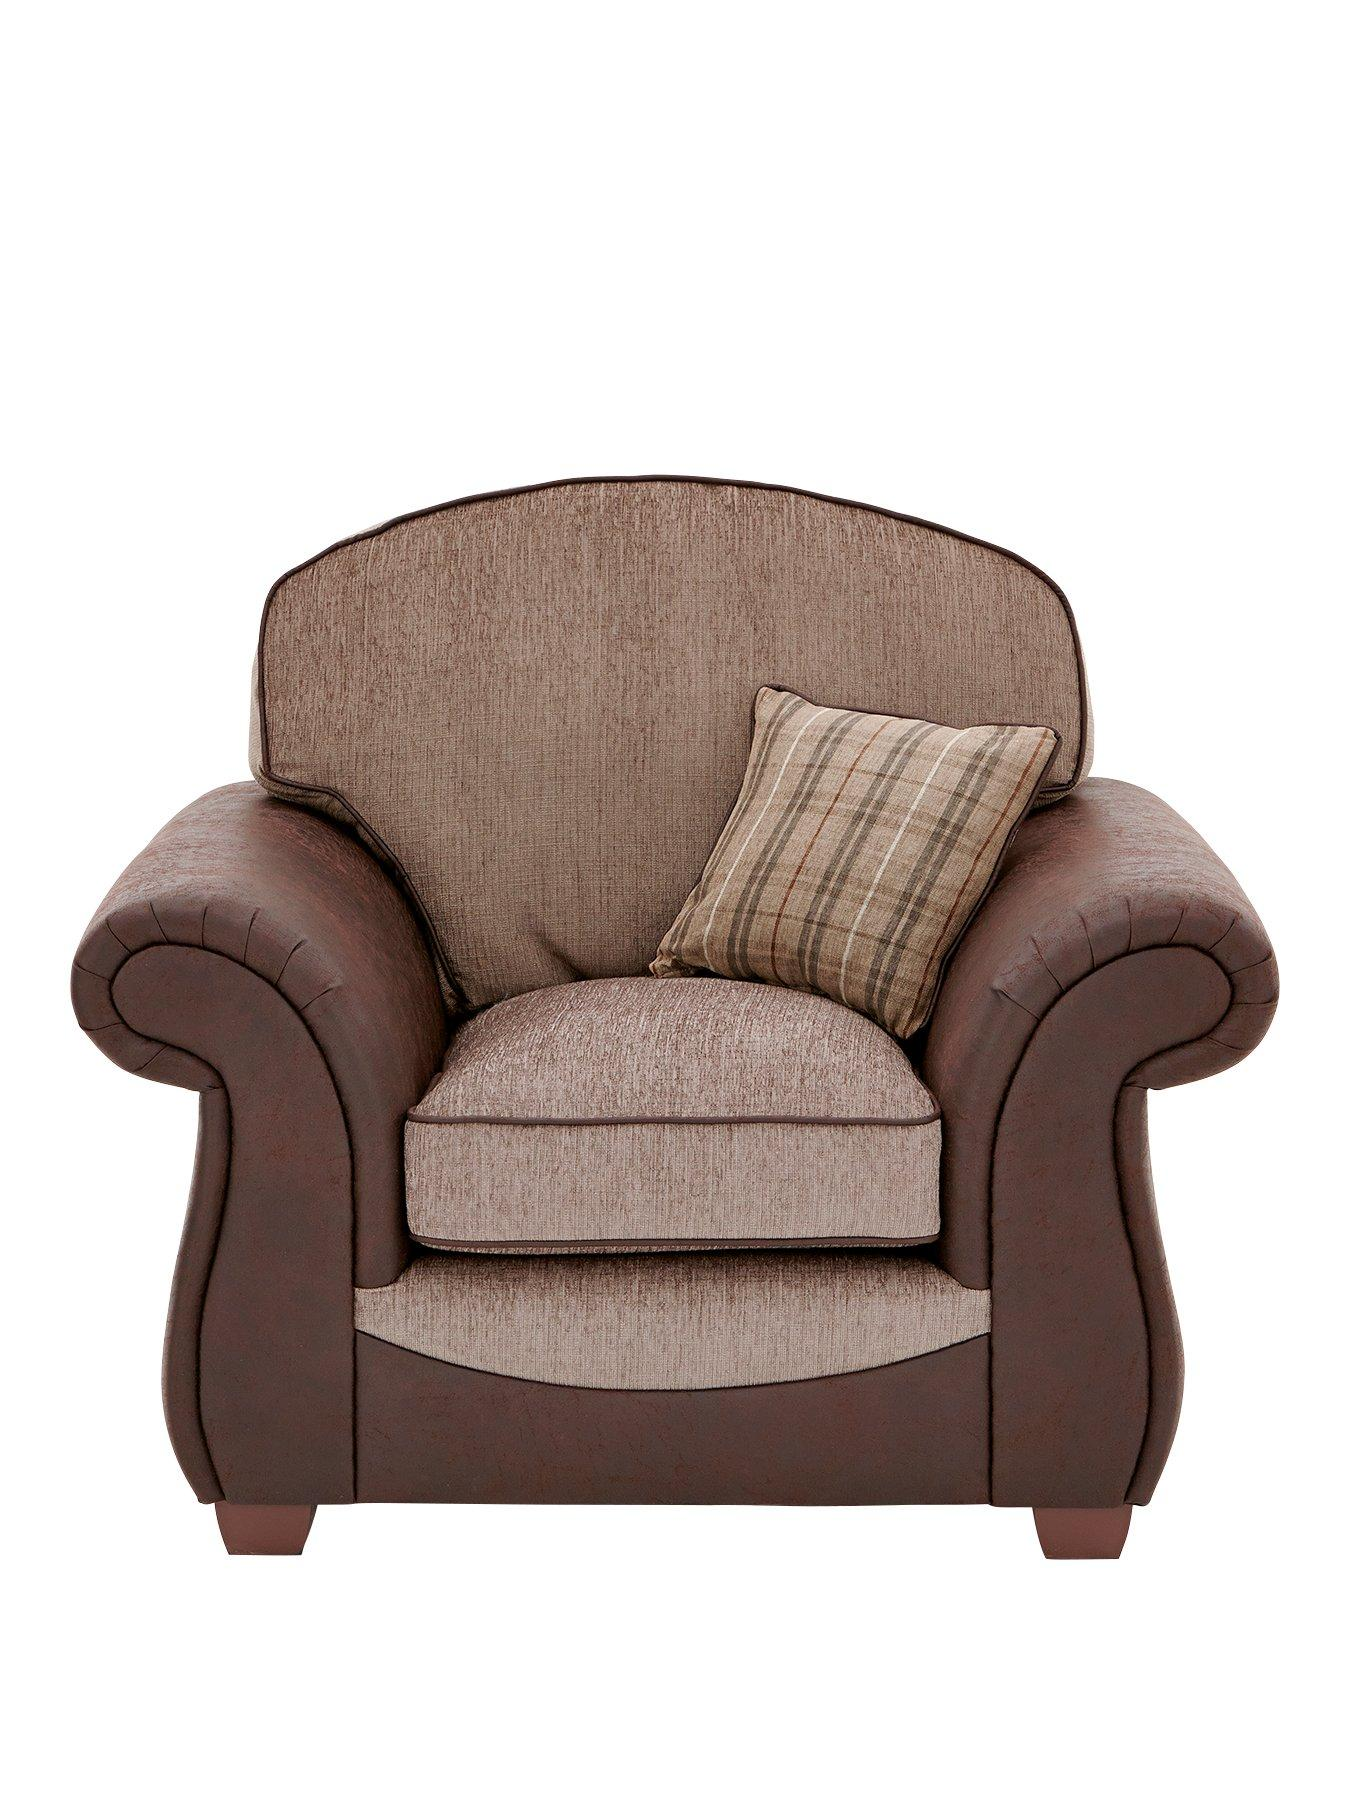 swivel chair littlewoods broda accessories armchairs & recliners | living room ireland